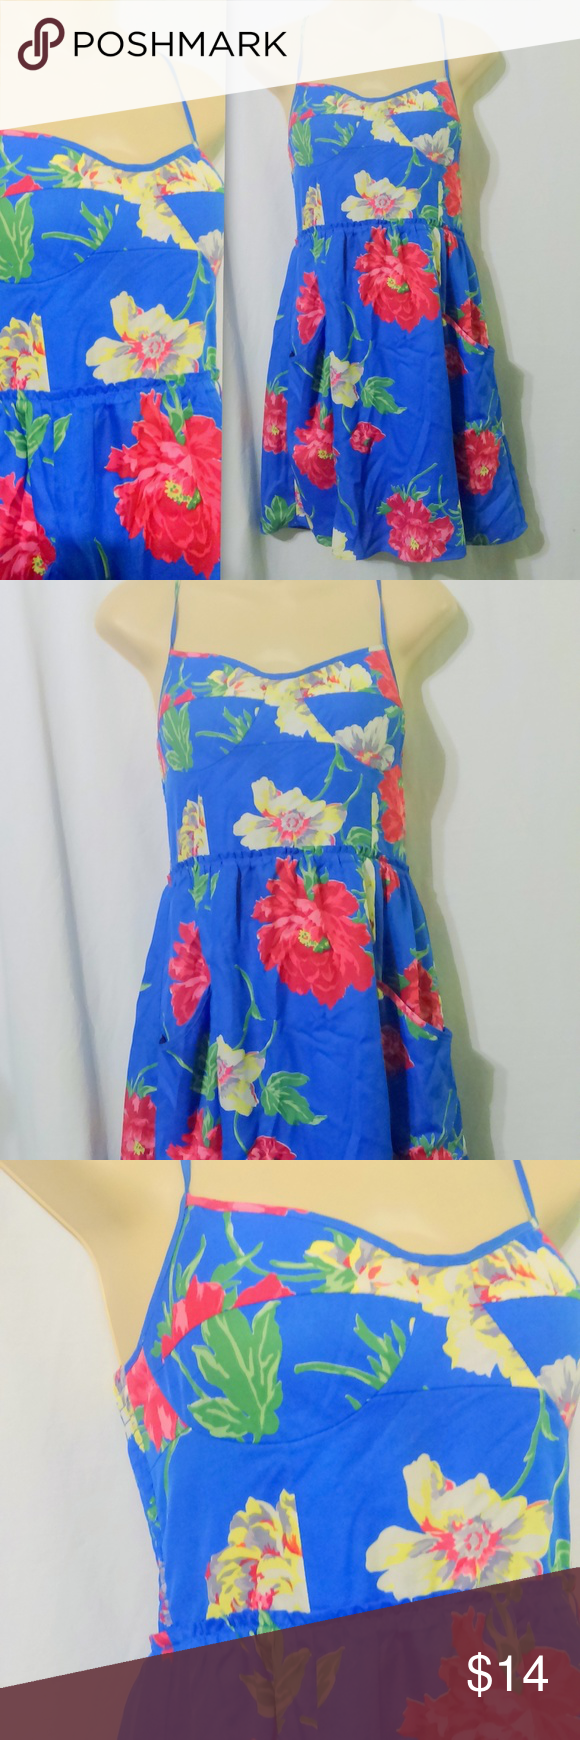 "American Eagle Outfitters Blue Floral Sun Dress This lovely little sundress is made by American Eagle Outfitters and is a size medium. The dress is done in a lined polyester with a pretty floral print. Dress features a built in bra, elastic back and large pockets in the skirt. Measurements are: Bust 36"", waist 28"", hips 44"", length 35"". In beautiful condition! American Eagle Outfitters Dresses Mini"